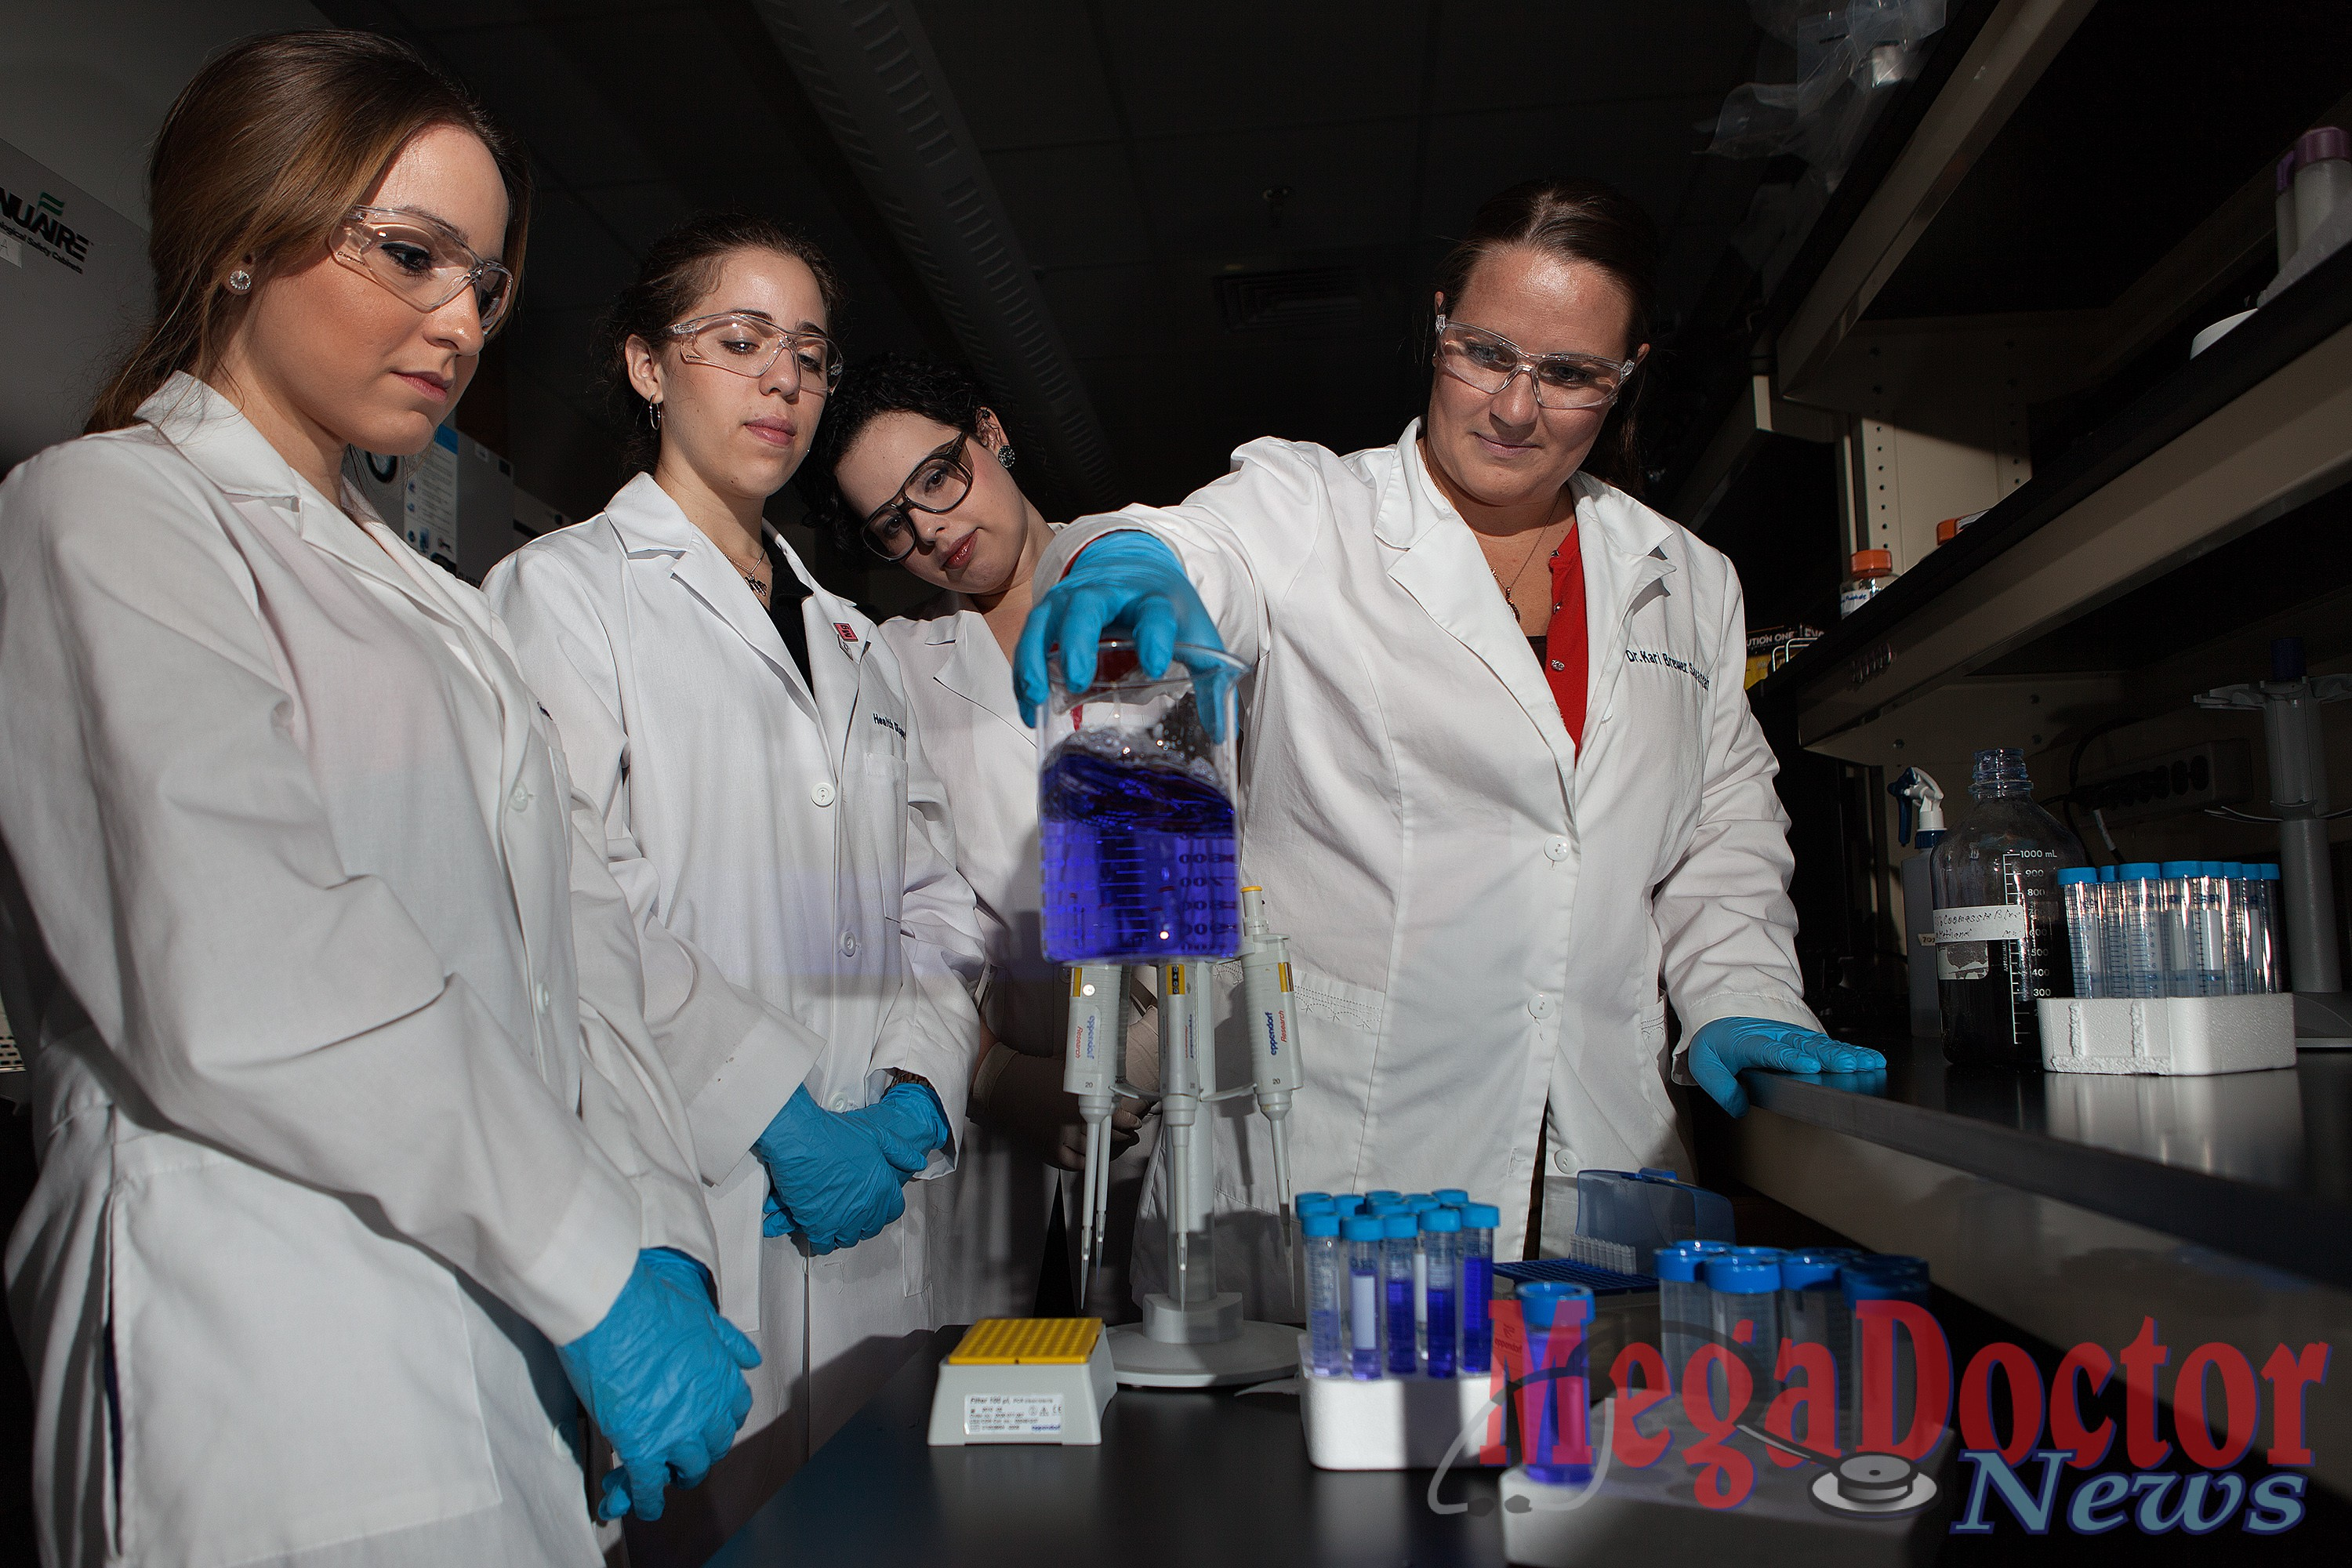 Dr. Kari Brewer-Savannah, right, works with students Andrea Fragoso, Miriam De Leon and Erica De Leon in a Biomedical Research Building laboratory. Paul Chouy / UT Brownsville